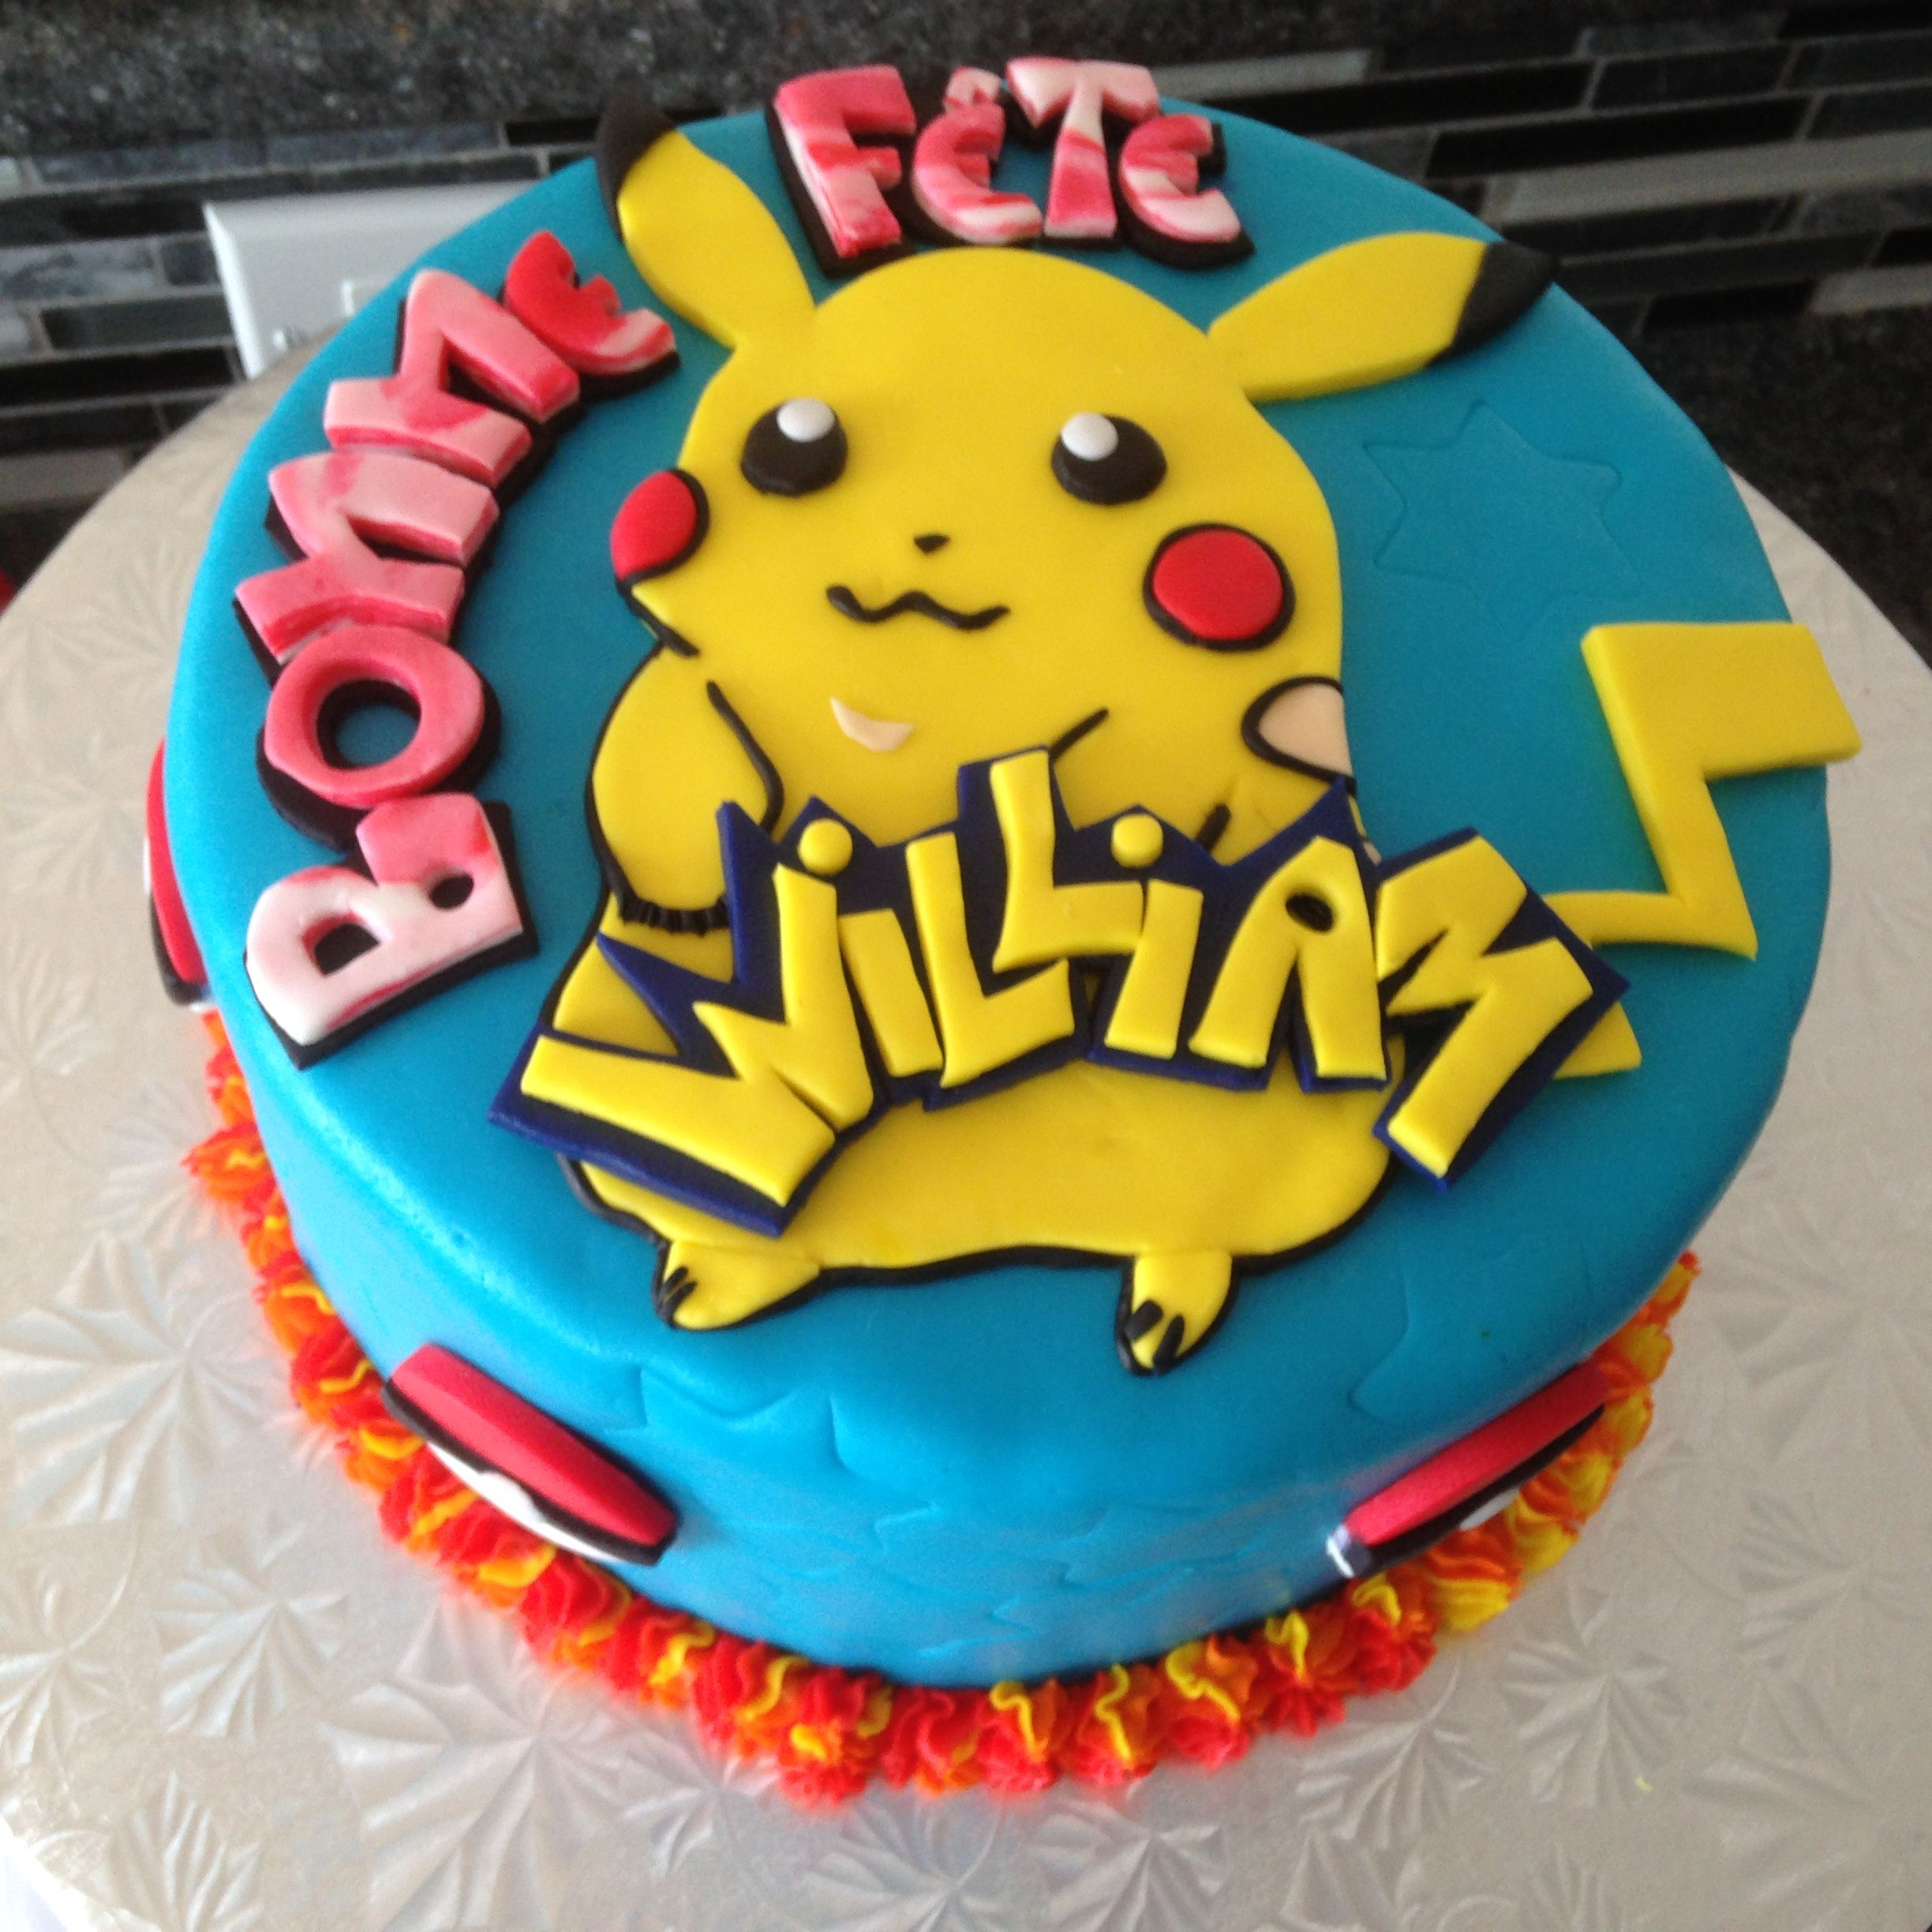 Picachu cake Fun Kids Birthday cakes Pinterest Cake Birthday